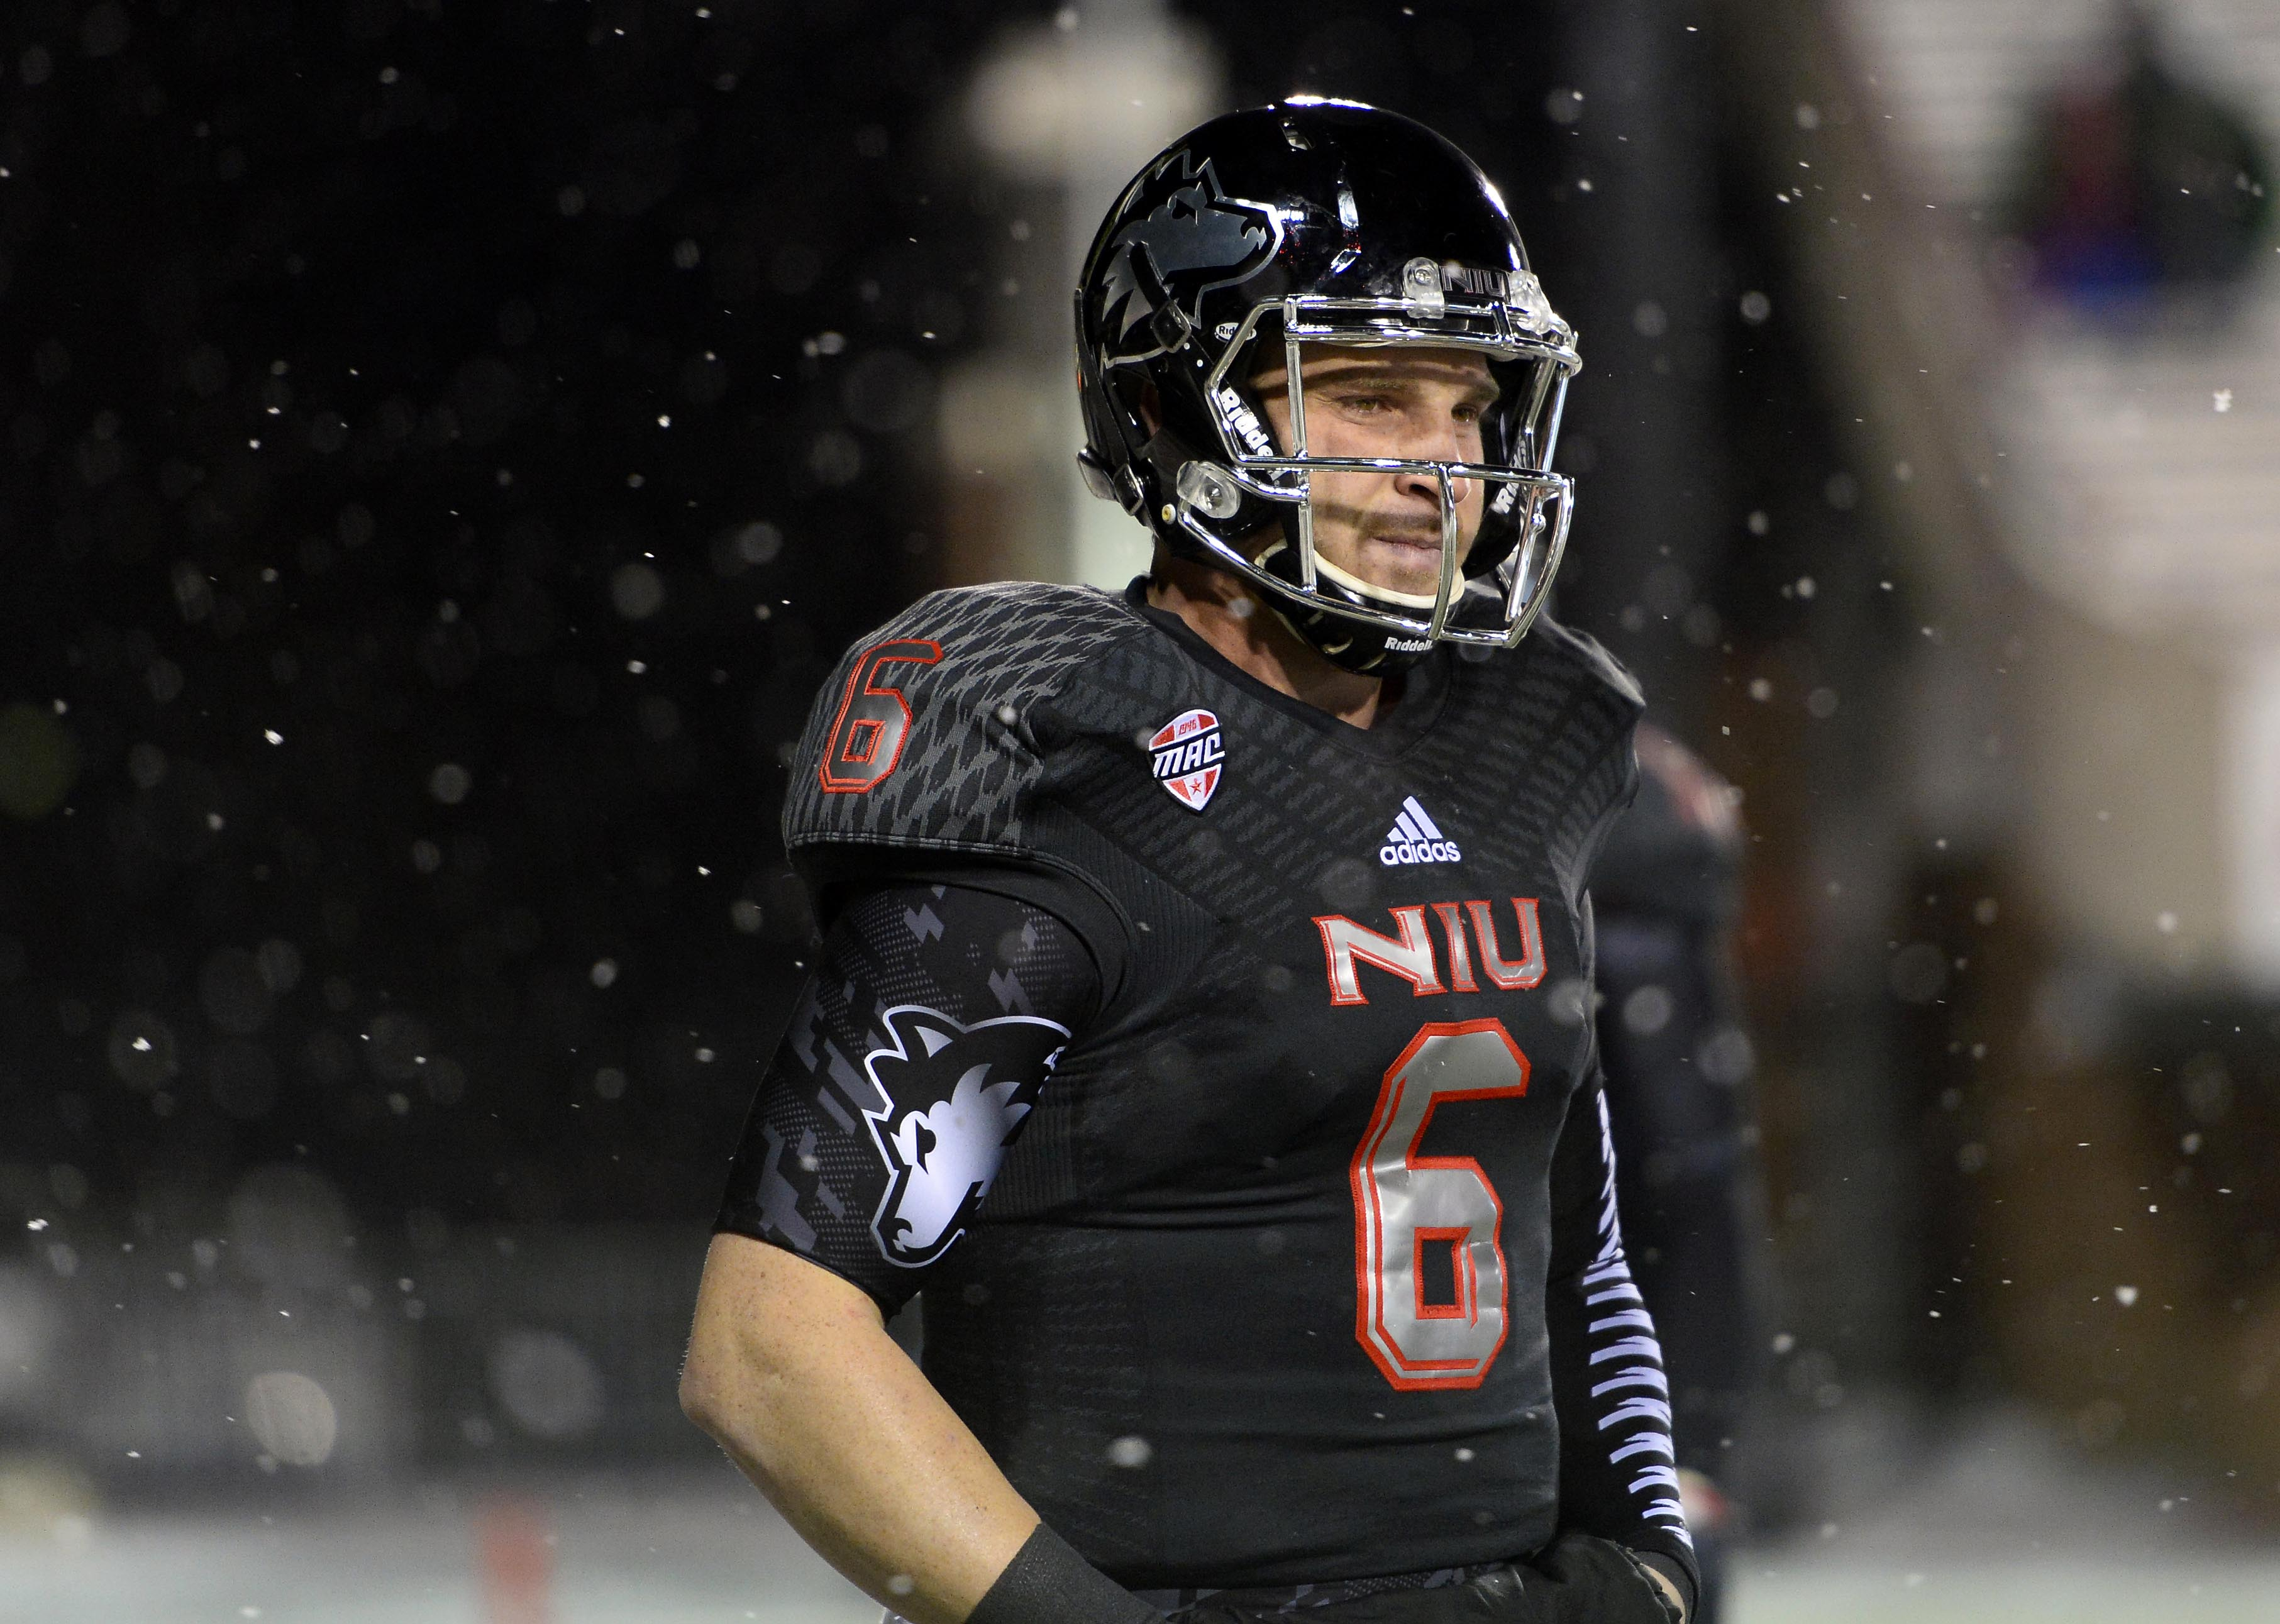 Nov 26, 2013; DeKalb, IL, USA; Northern Illinois Huskies quarterback Jordan Lynch (6) practices before the game against the Western Michigan Broncos at Huskie Stadium. (Mike DiNovo/USA TODAY Sports)